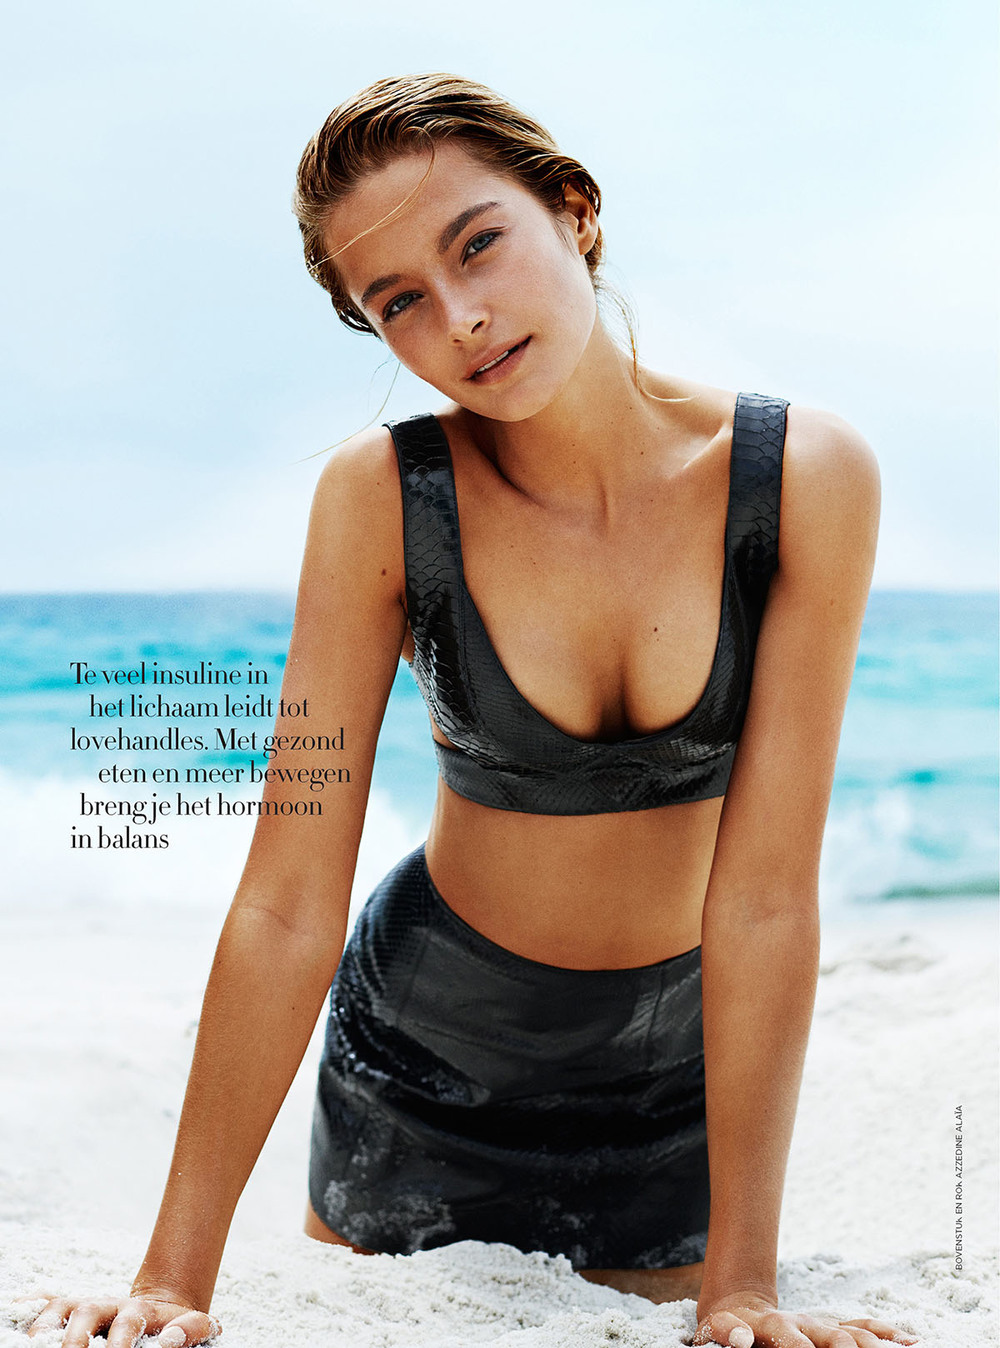 BRIDGET MALCOLM_HARPERS BAZAAR NL_JULY 2015_PAUL SCALA-8.jpg